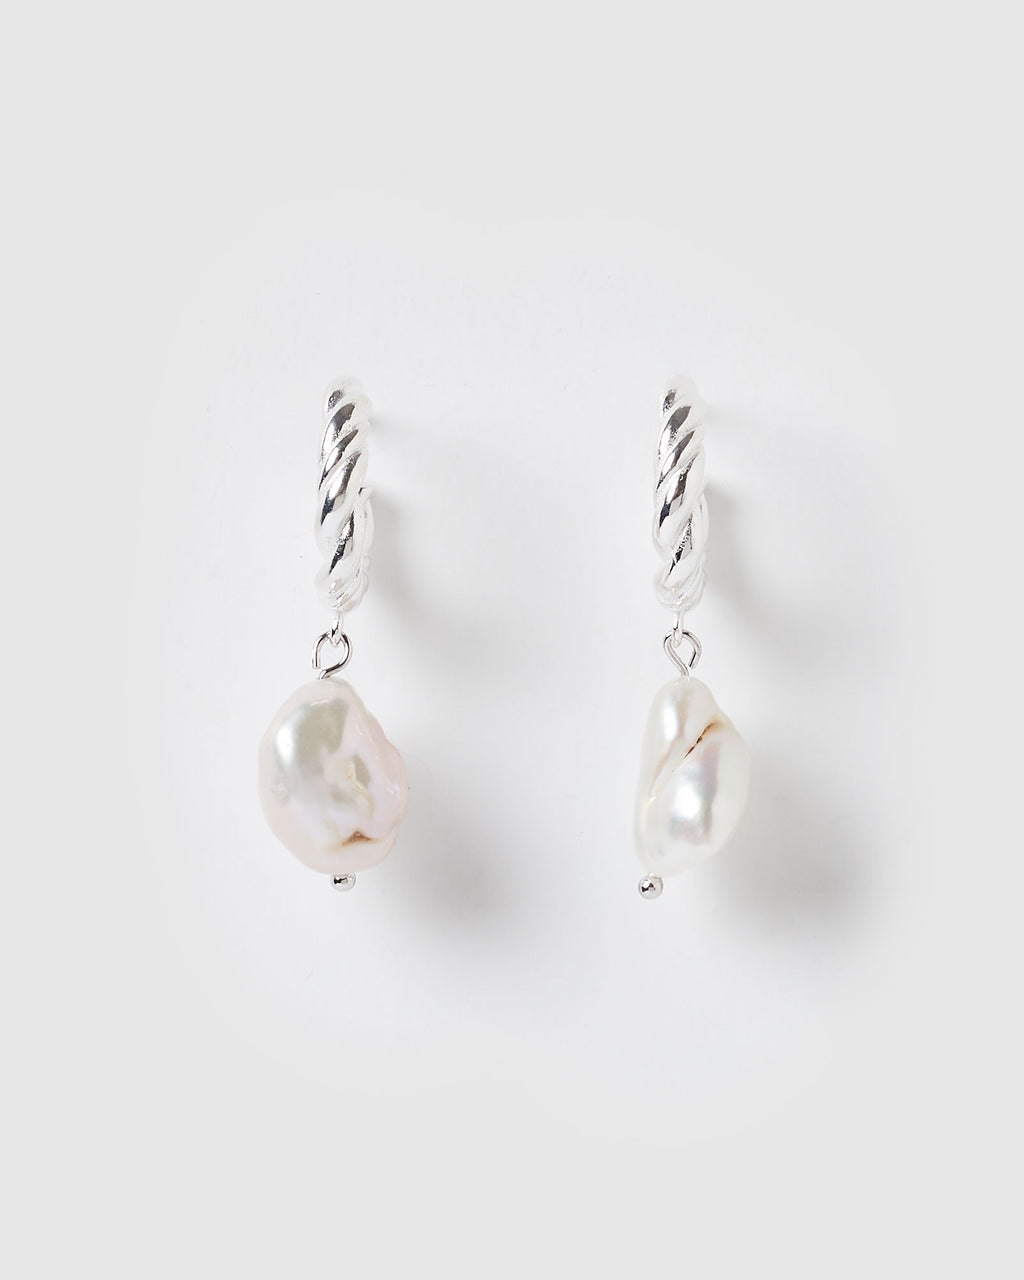 Izoa Darling Earrings Silver Freshwater Pearl